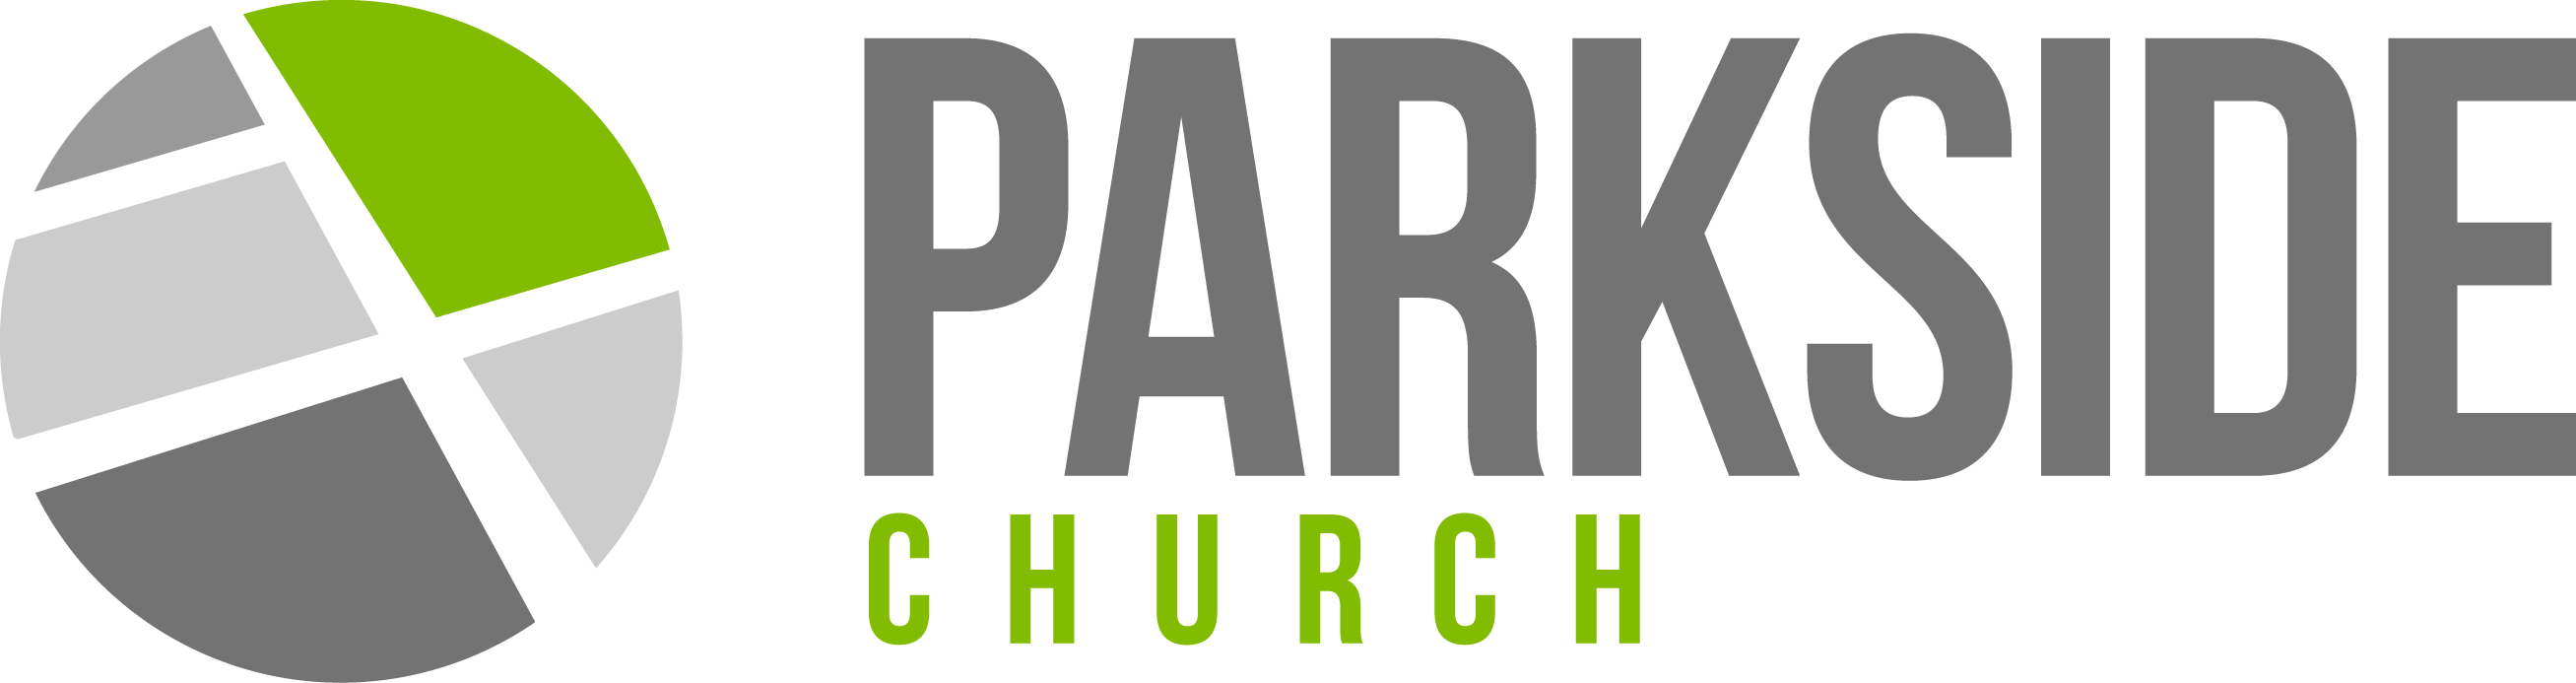 Atlanta generation link parkside church malvernweather Choice Image